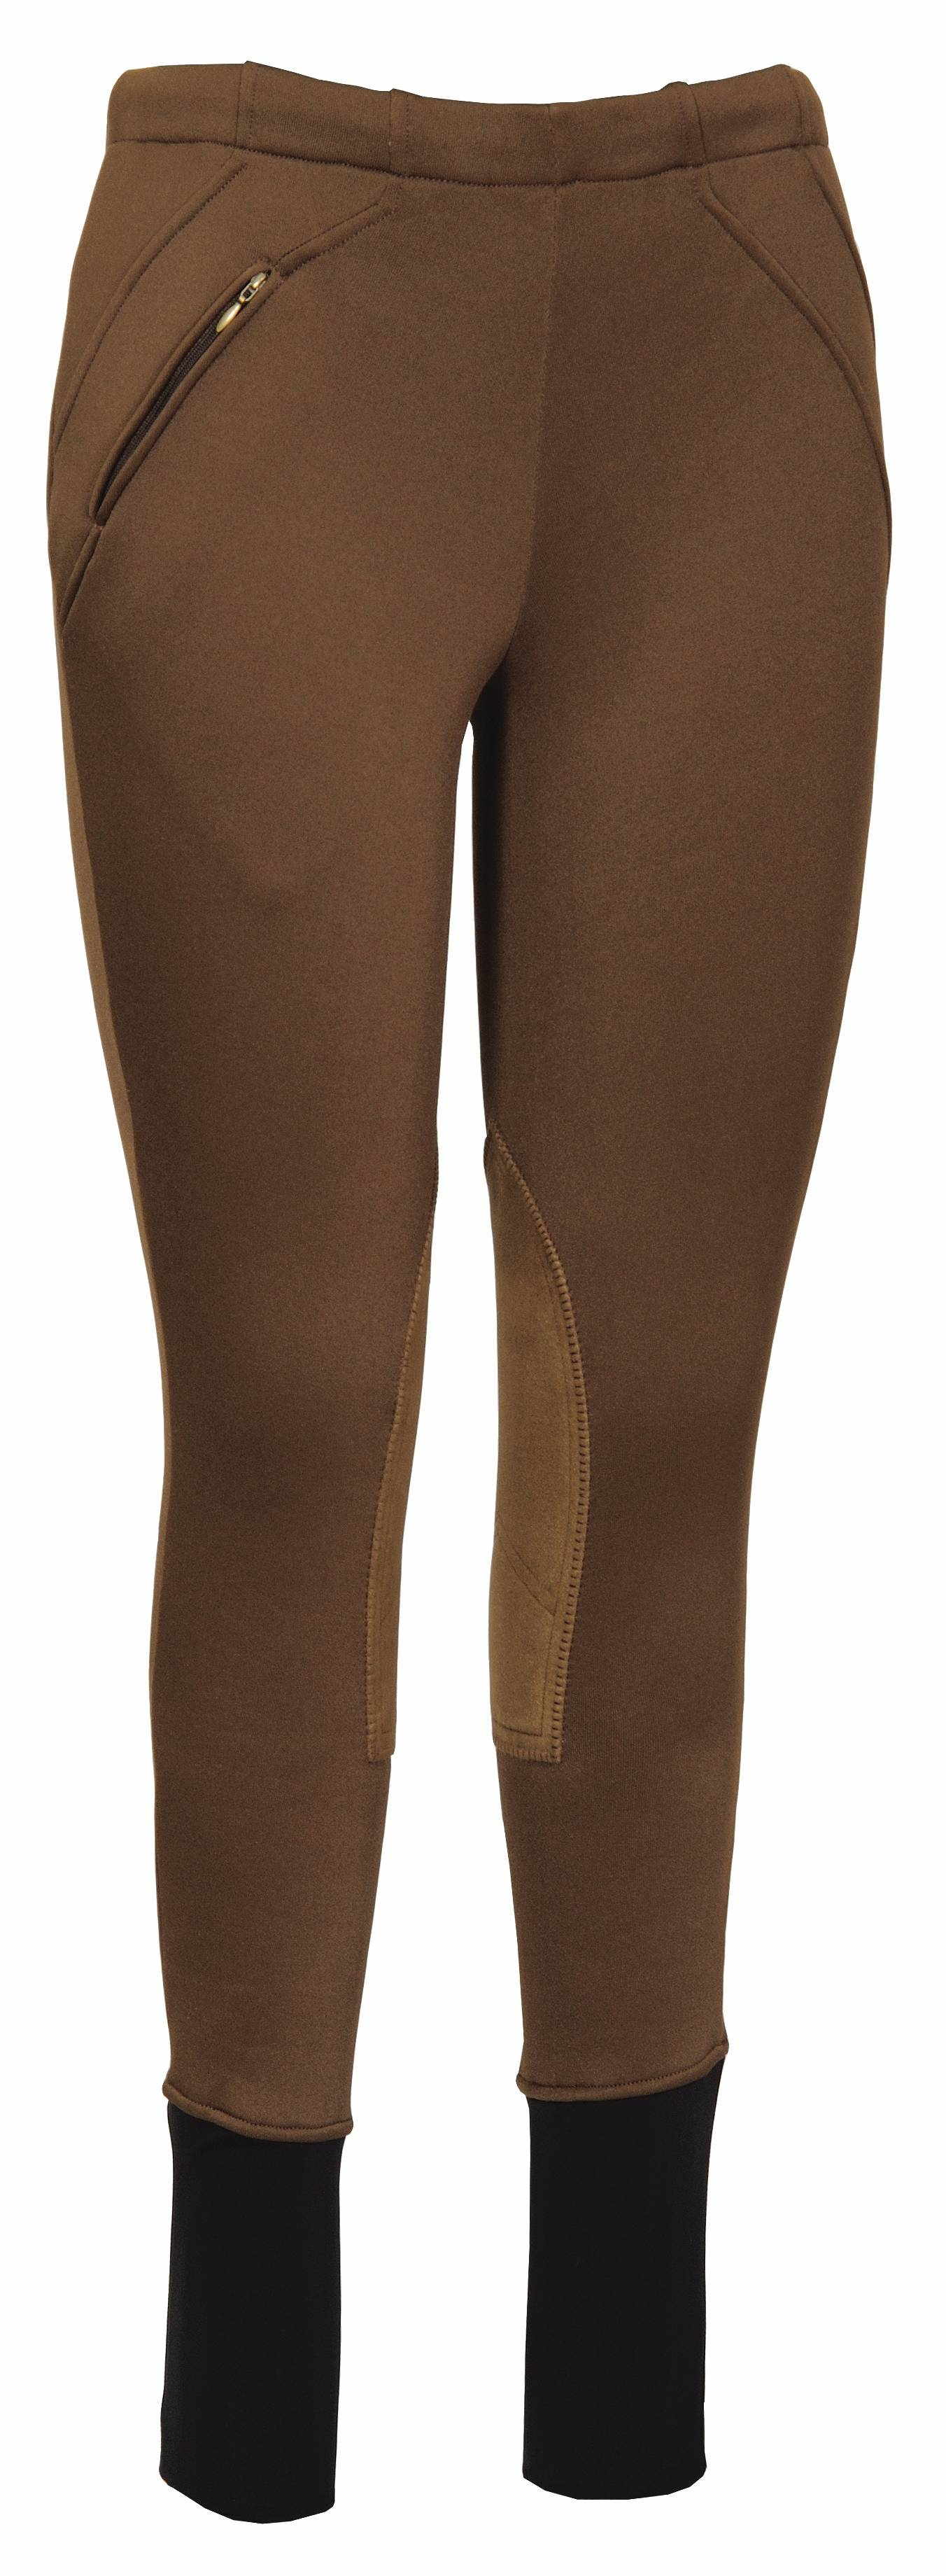 TuffRider Ladies Comfort Unifleece Breech